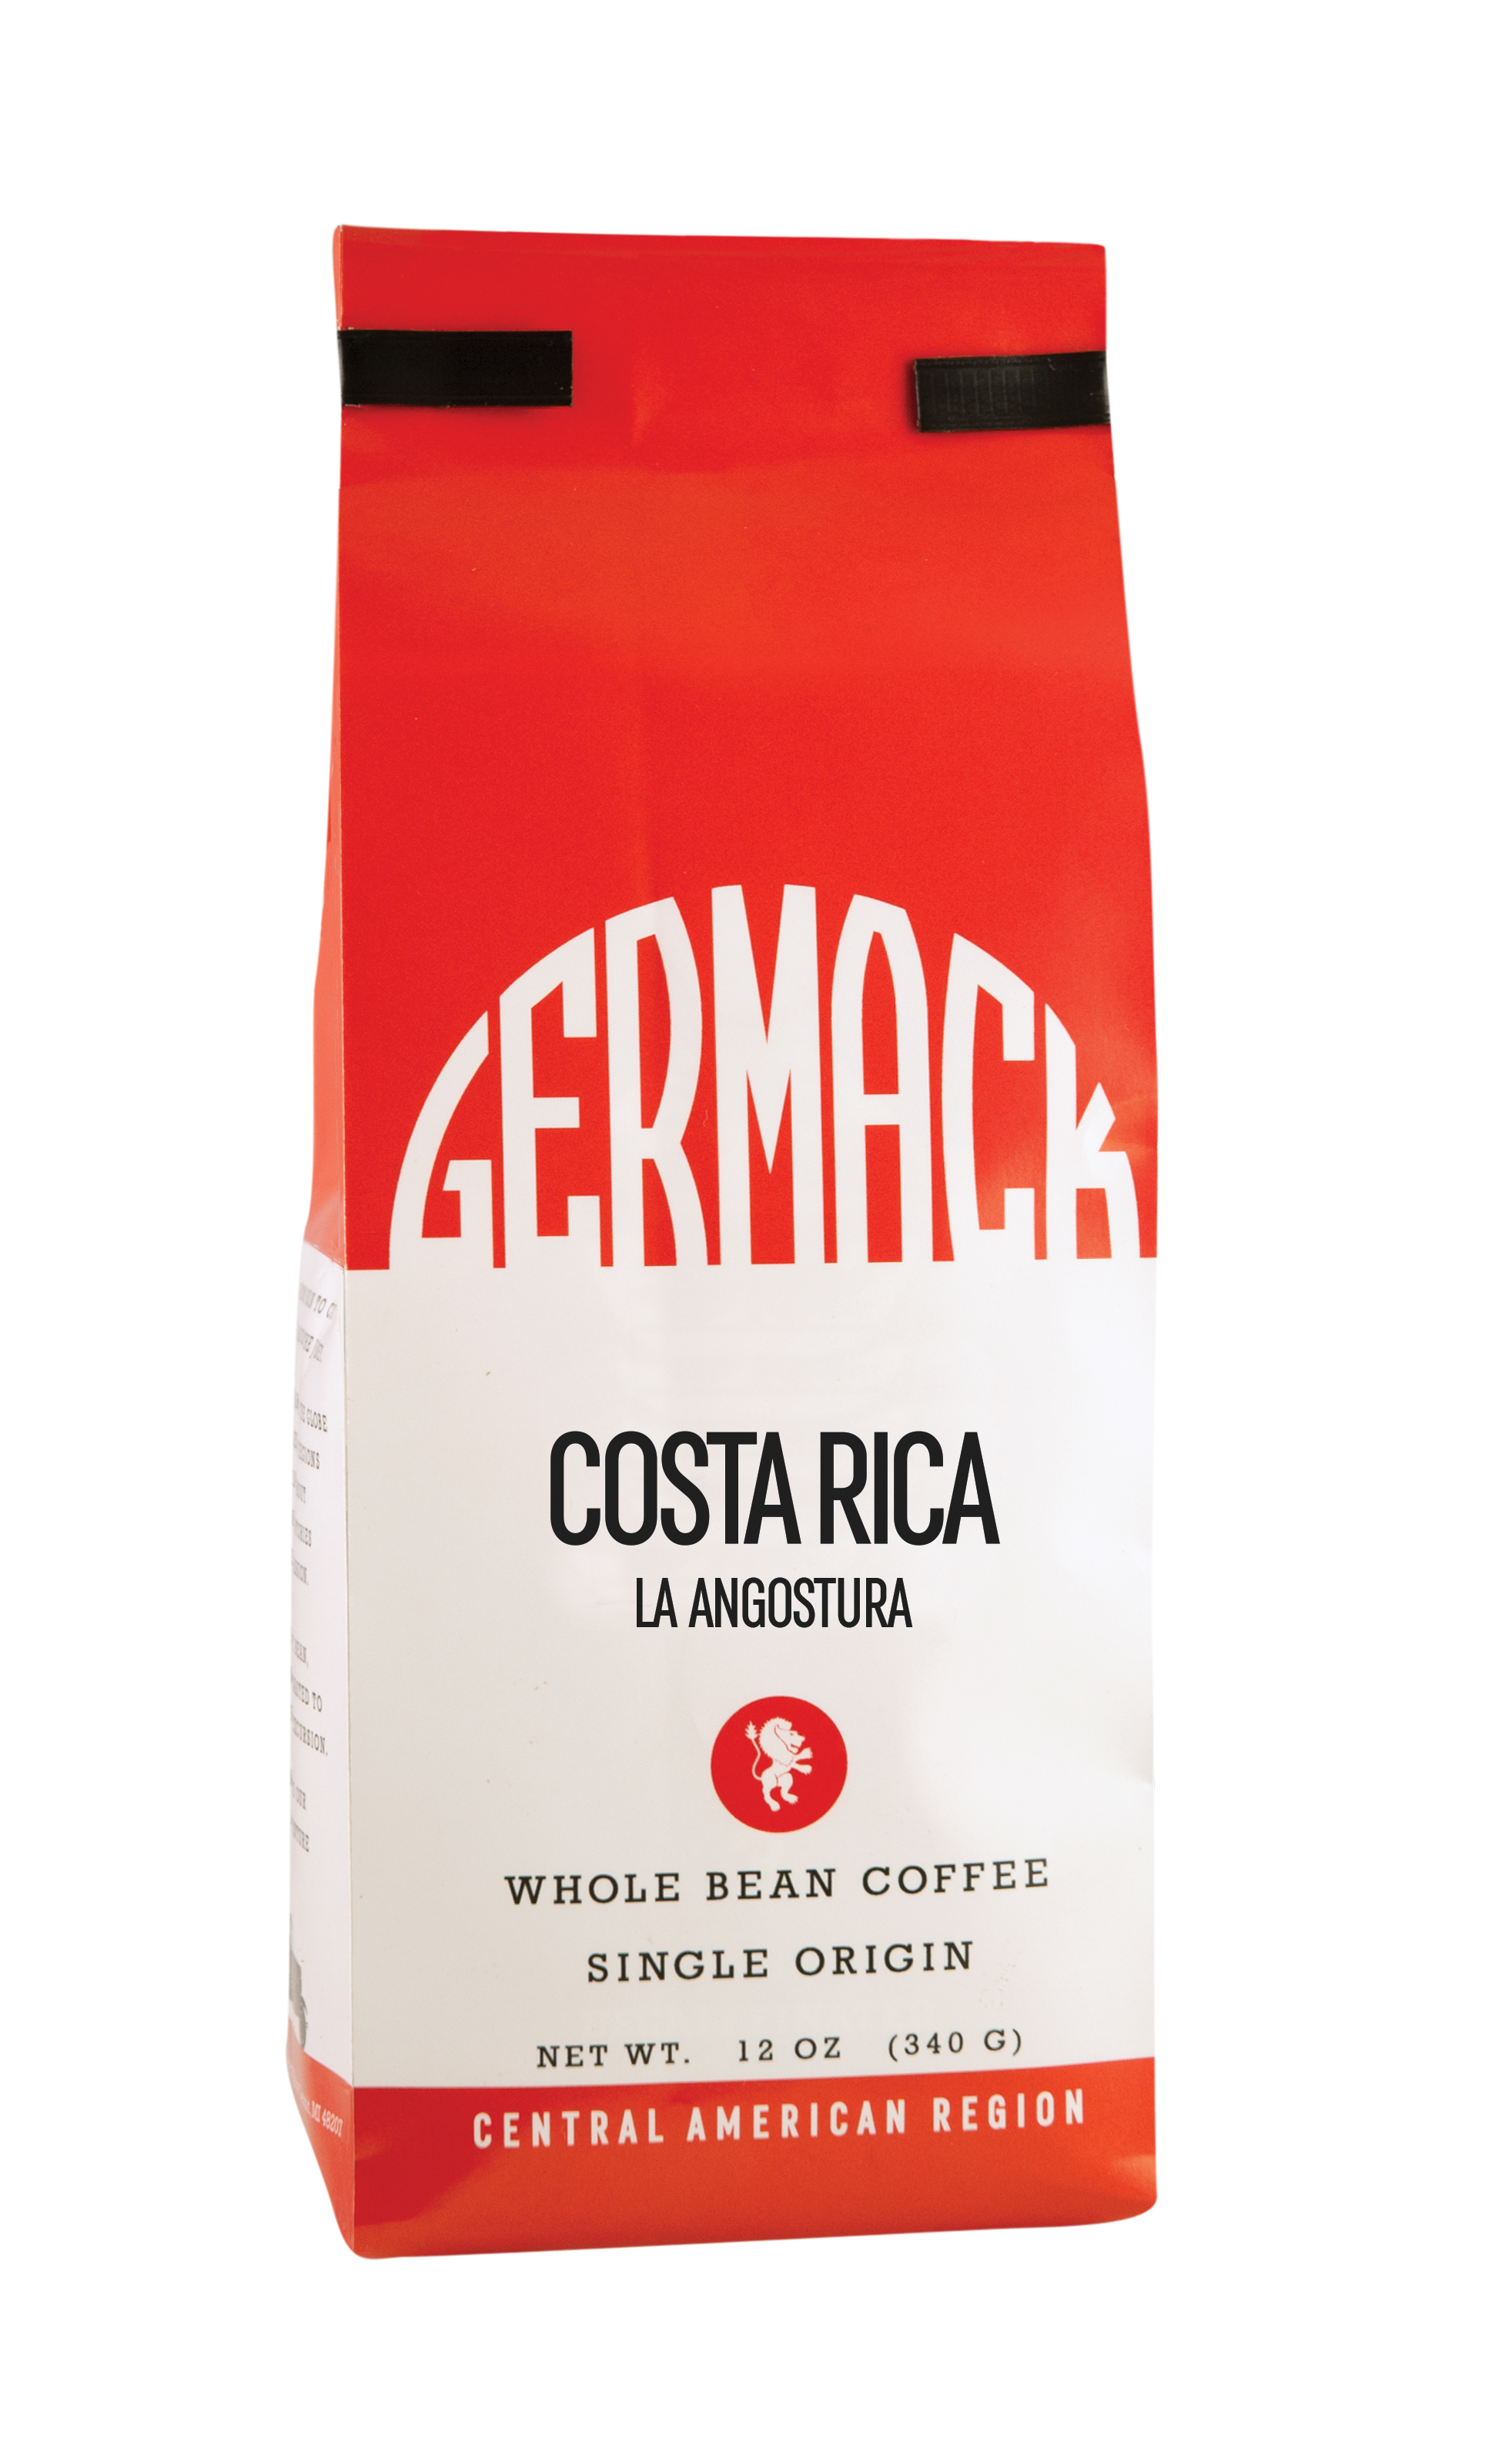 Germack Coffee (12 oz.) - Costa Rica La Angostura